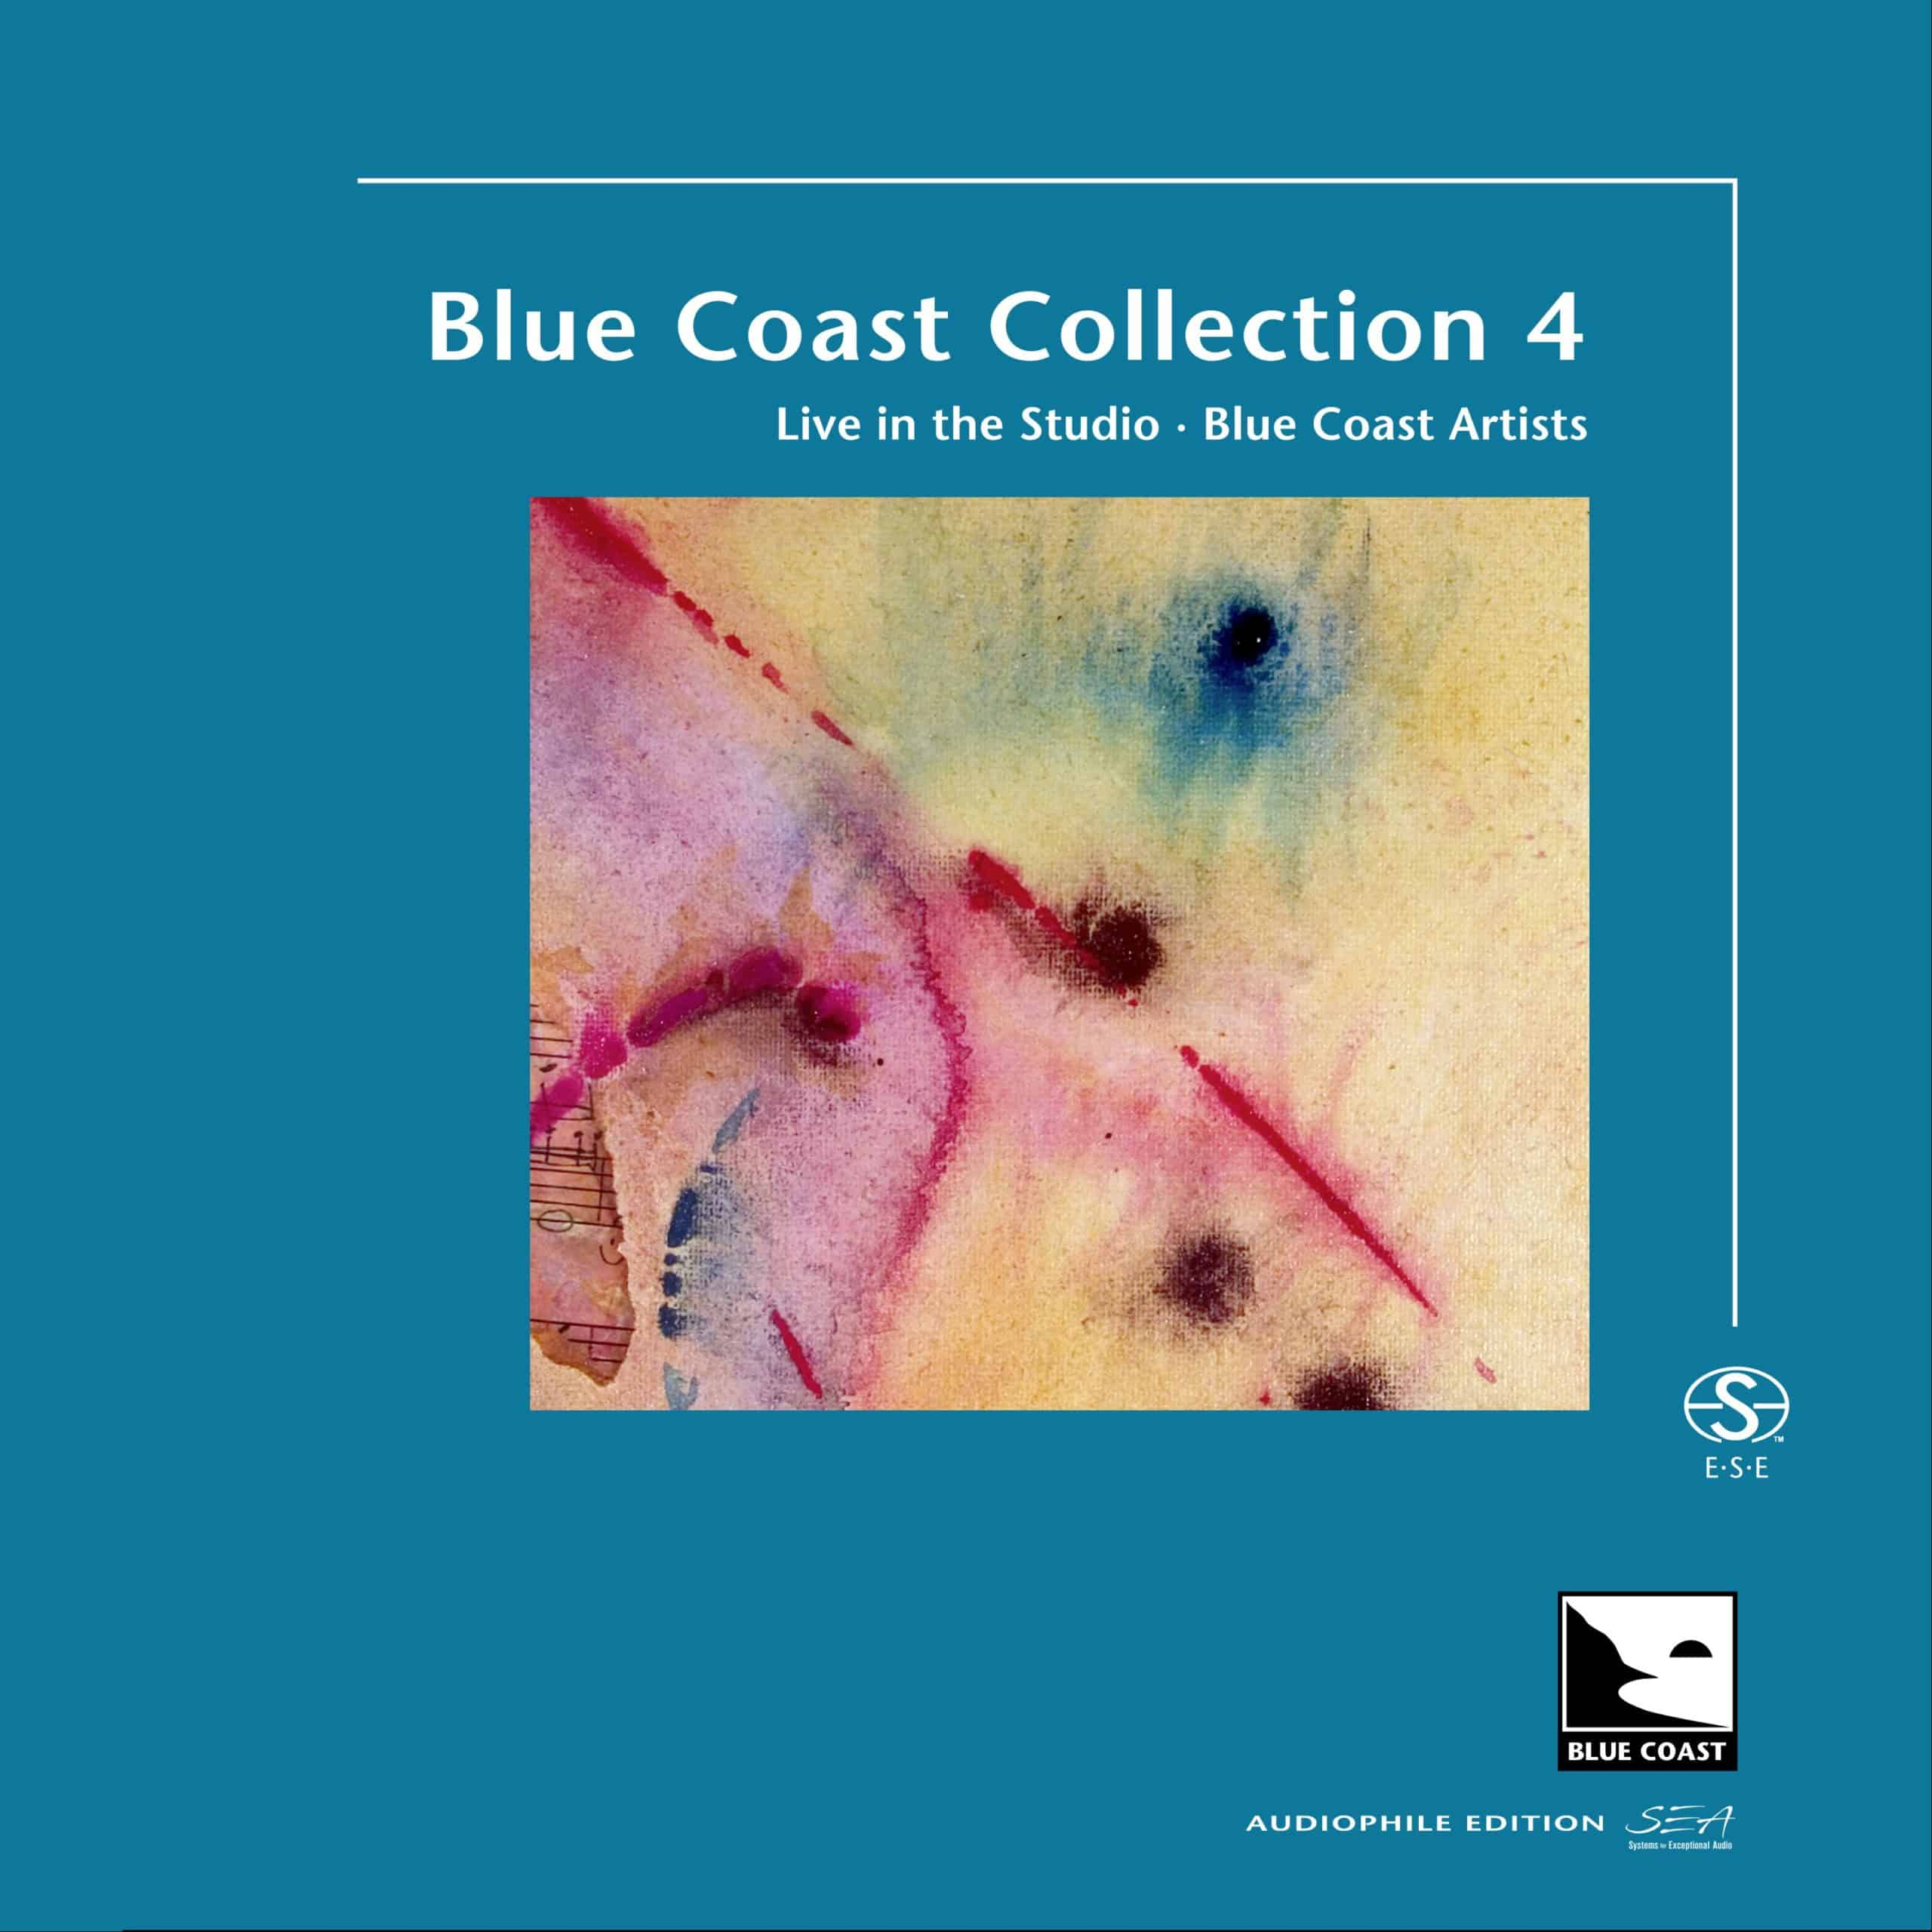 Blue Coast Collection 4